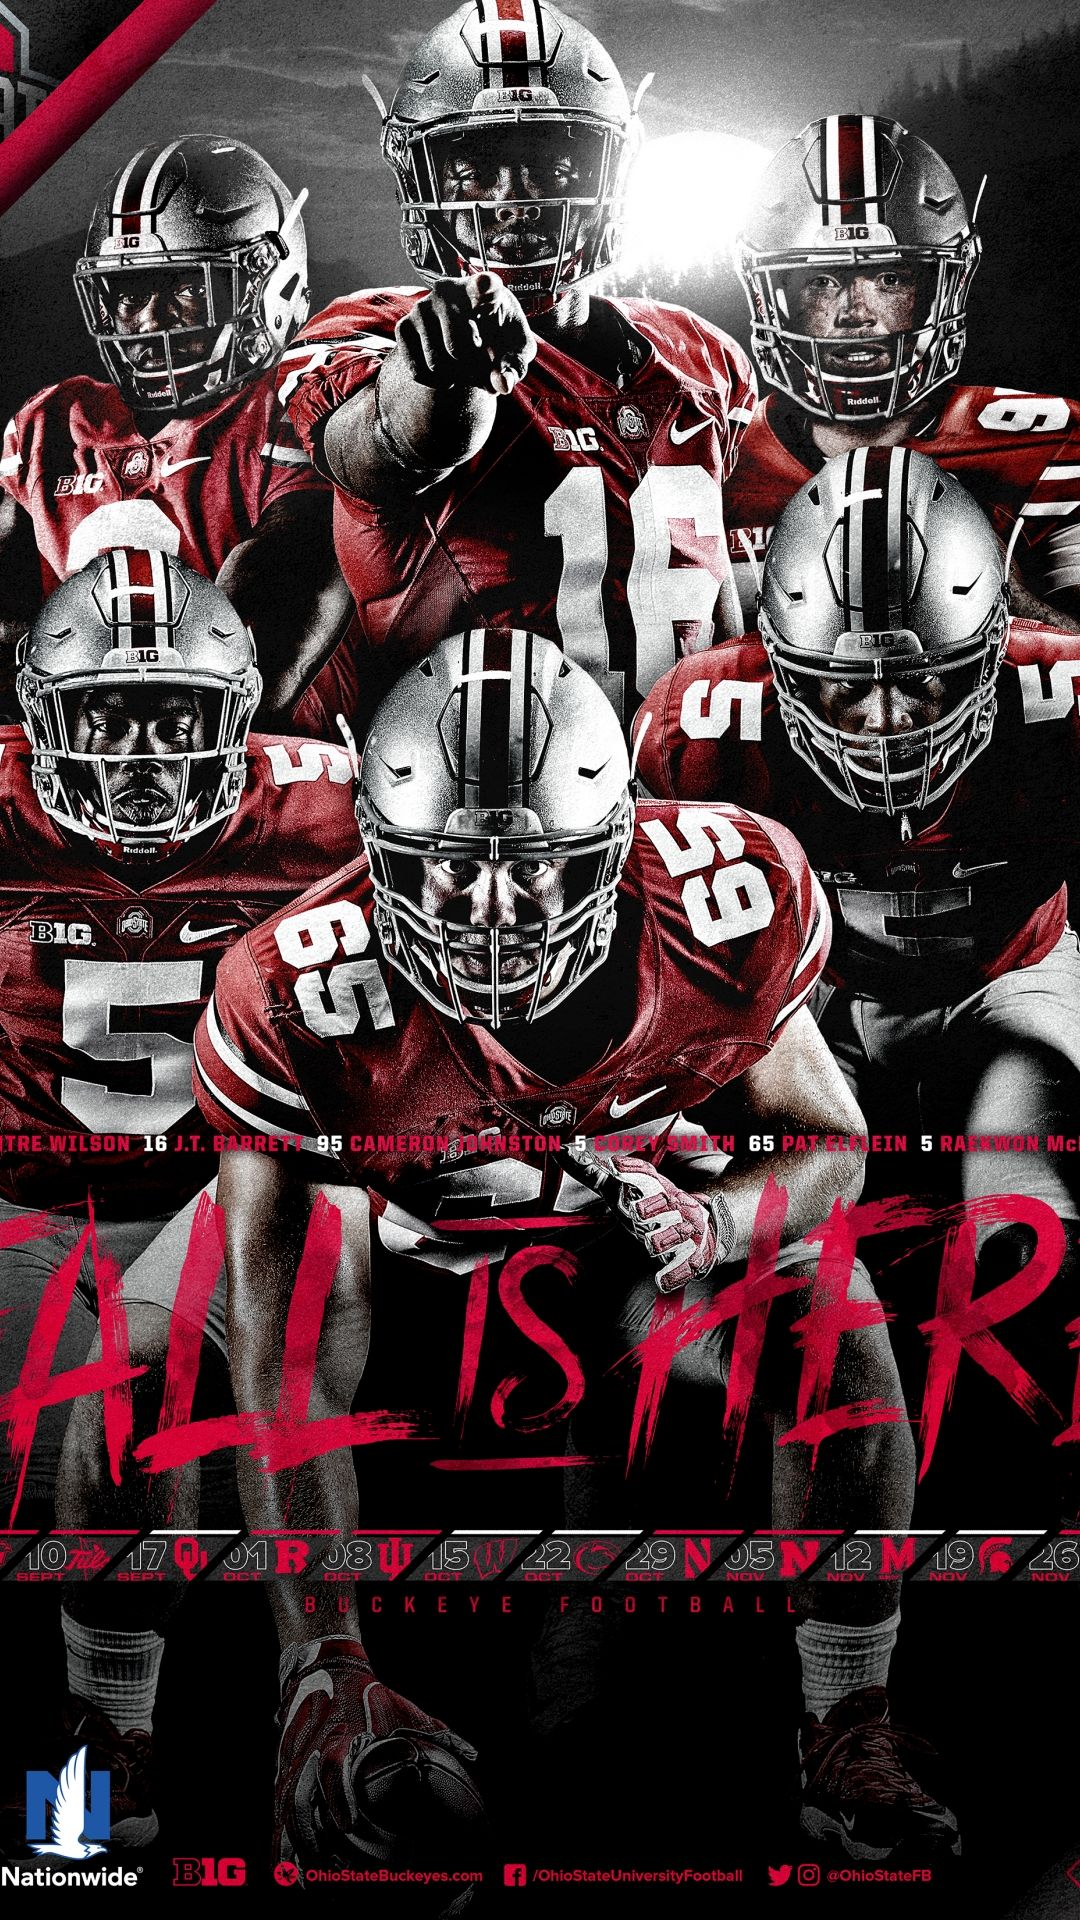 Cool Ohio State Wallpaper Android Download in 2020 Ohio